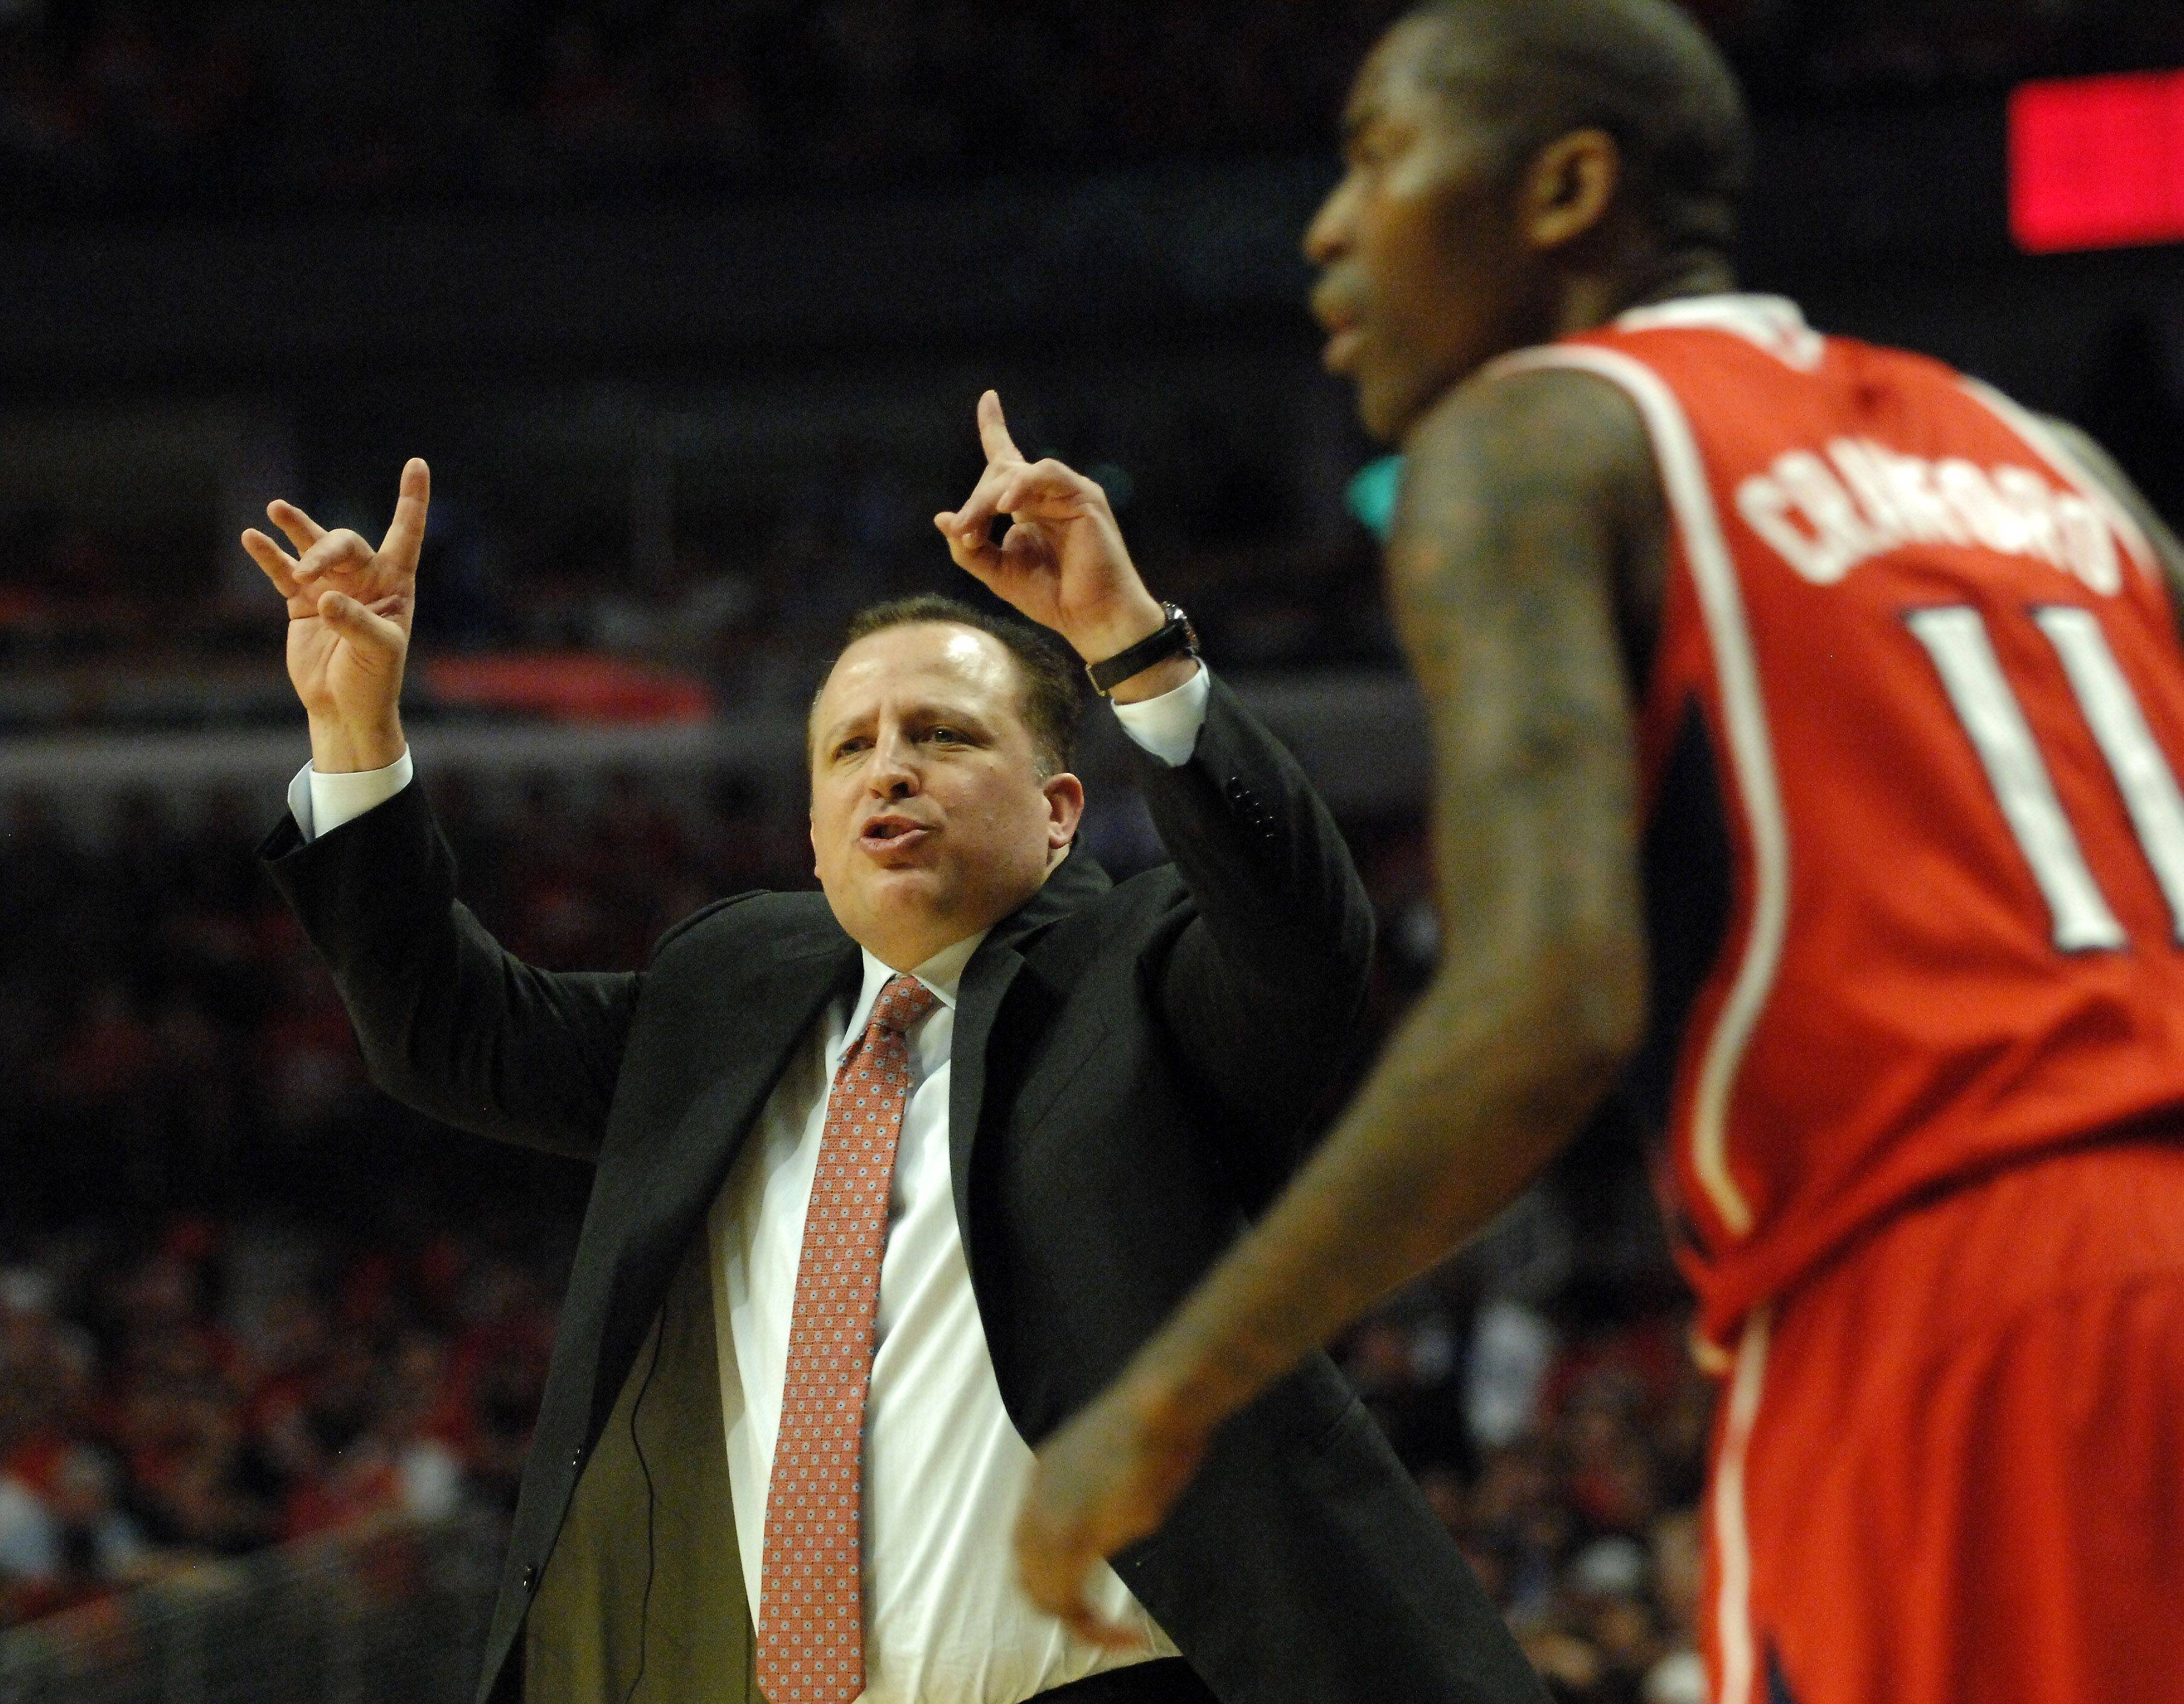 Chicago Bulls head coach Tom Thibodeau gives instructions in the Eastern Conference semifinals at the United Center Tuesday.